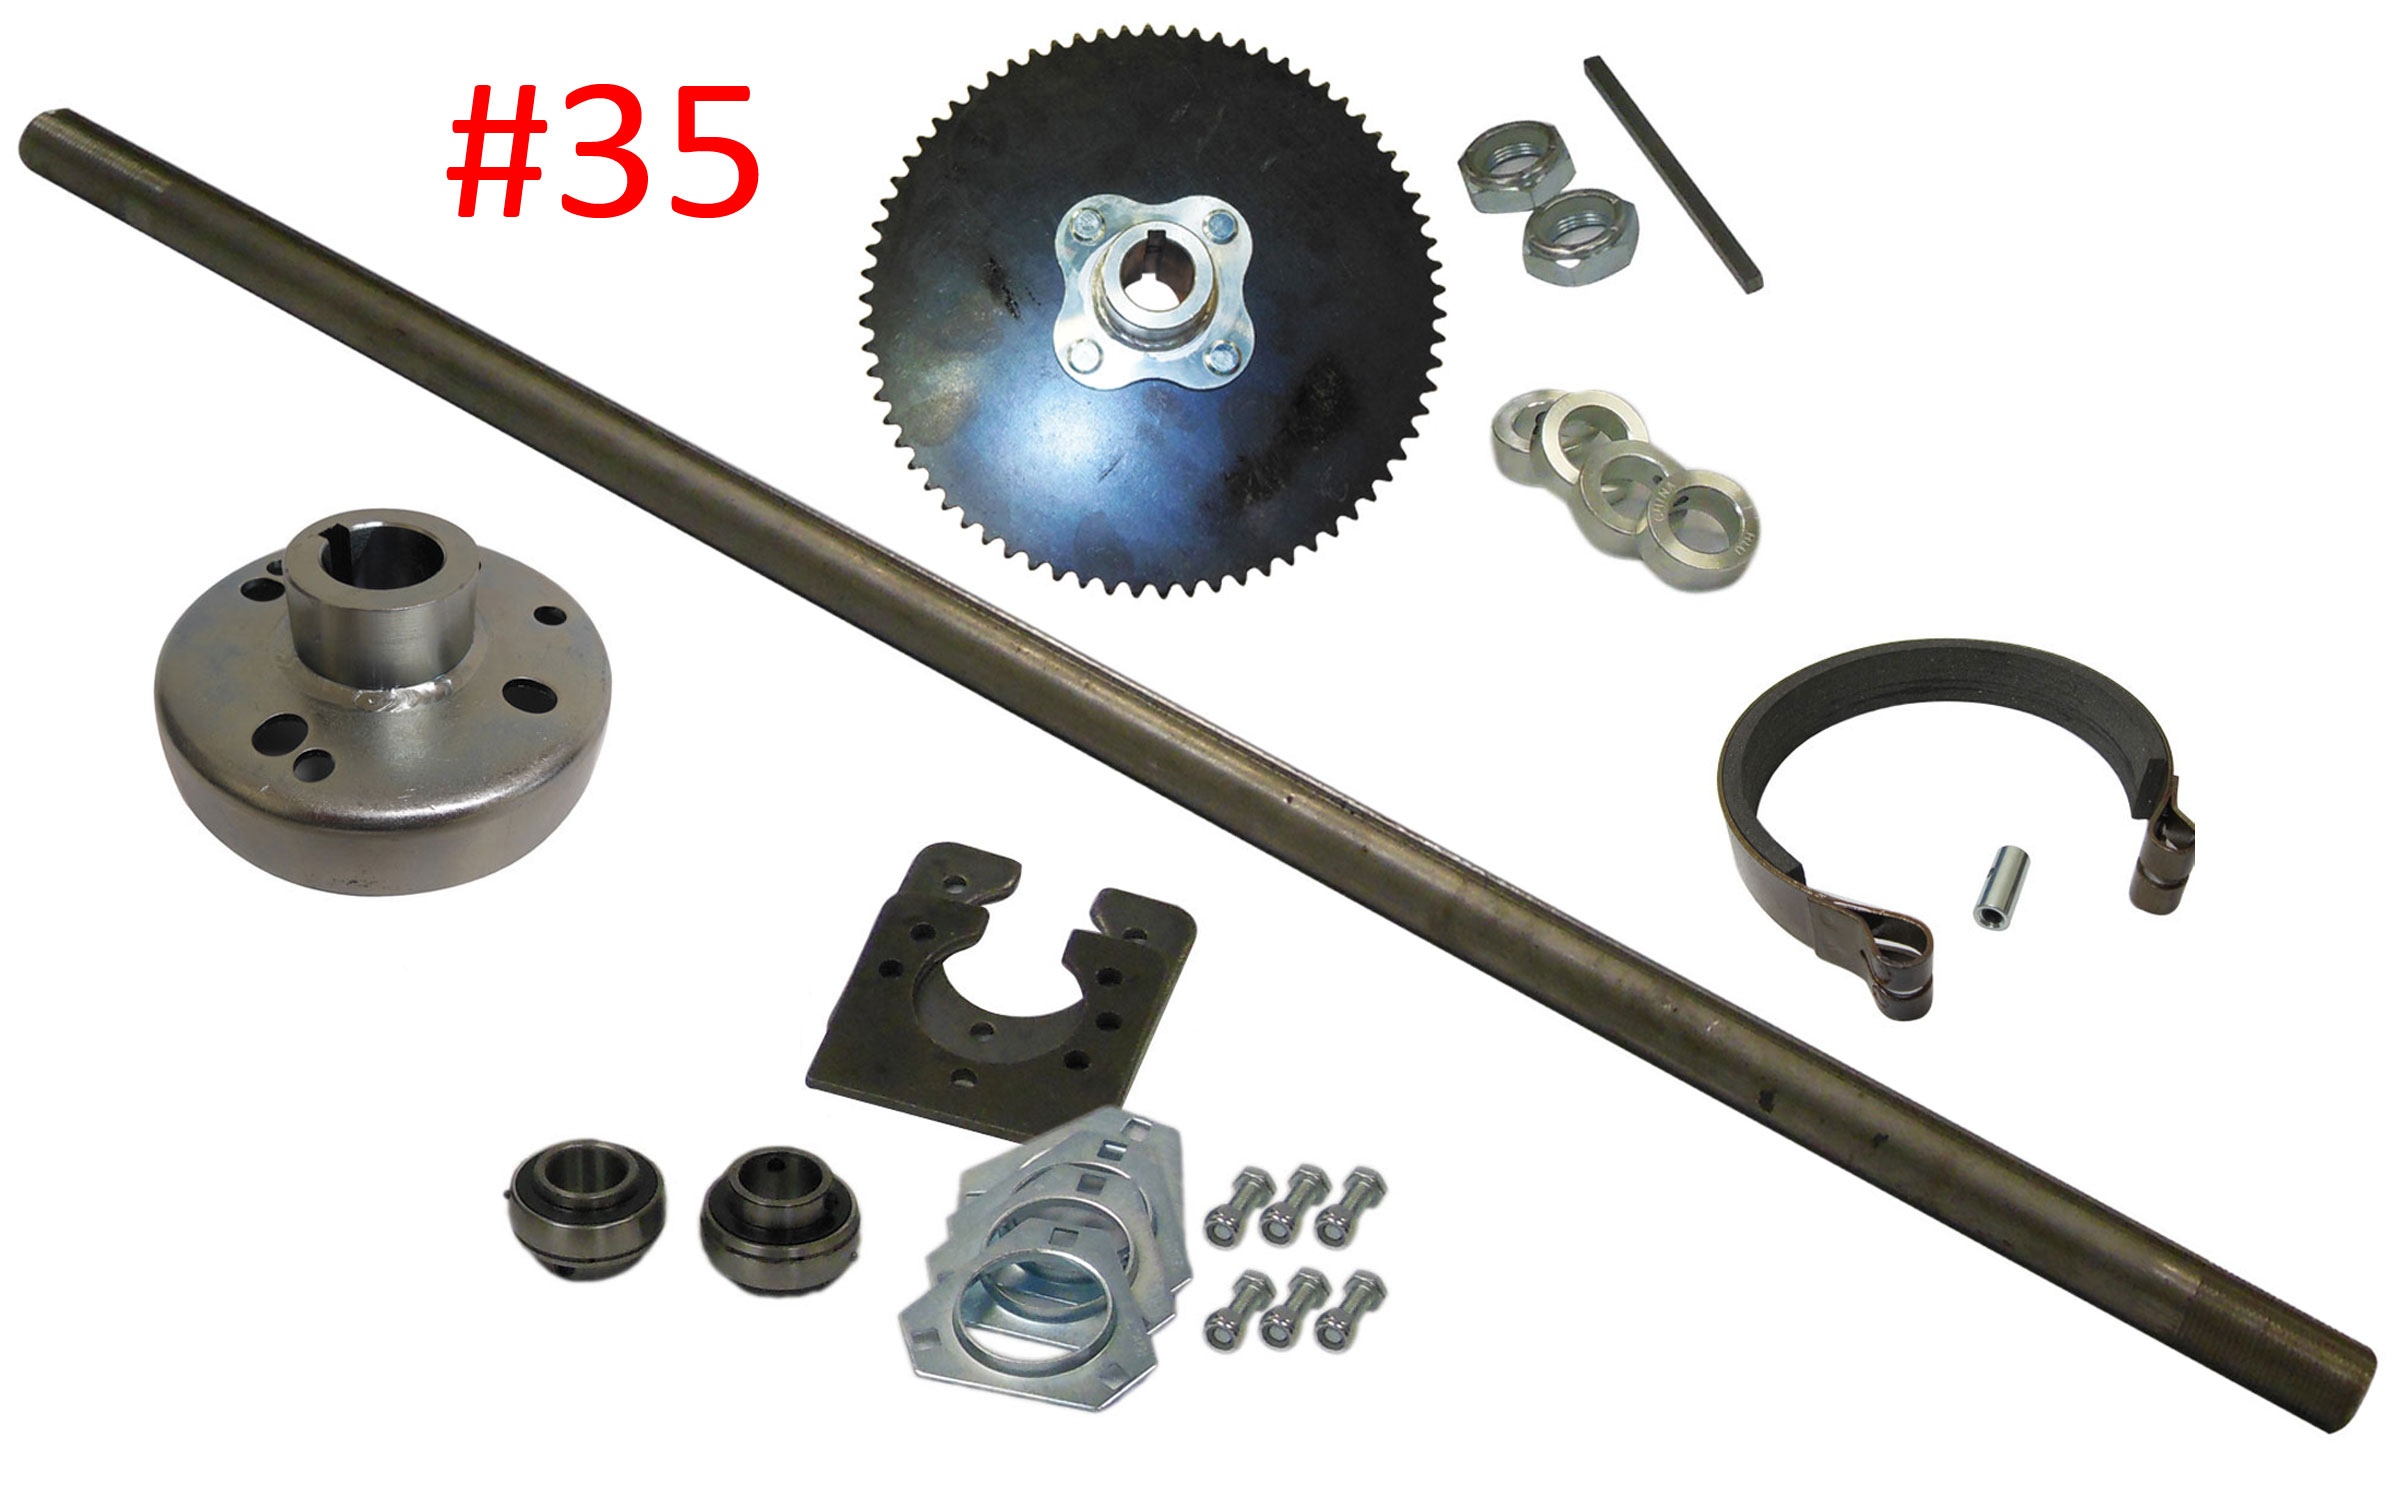 1 Live Go Kart Axle Kit  p 7484 likewise plete Front End For Yerf Dog Designed For 58 Bolt p 1745 likewise 24v Thumb Throttle Golden Motor as well 196cc 6 5 Hp Honda Clone Gx200 168f Go Kart Mini Bike Engine furthermore Controller Harness Pride Victory3 4. on yerf dog go cart parts